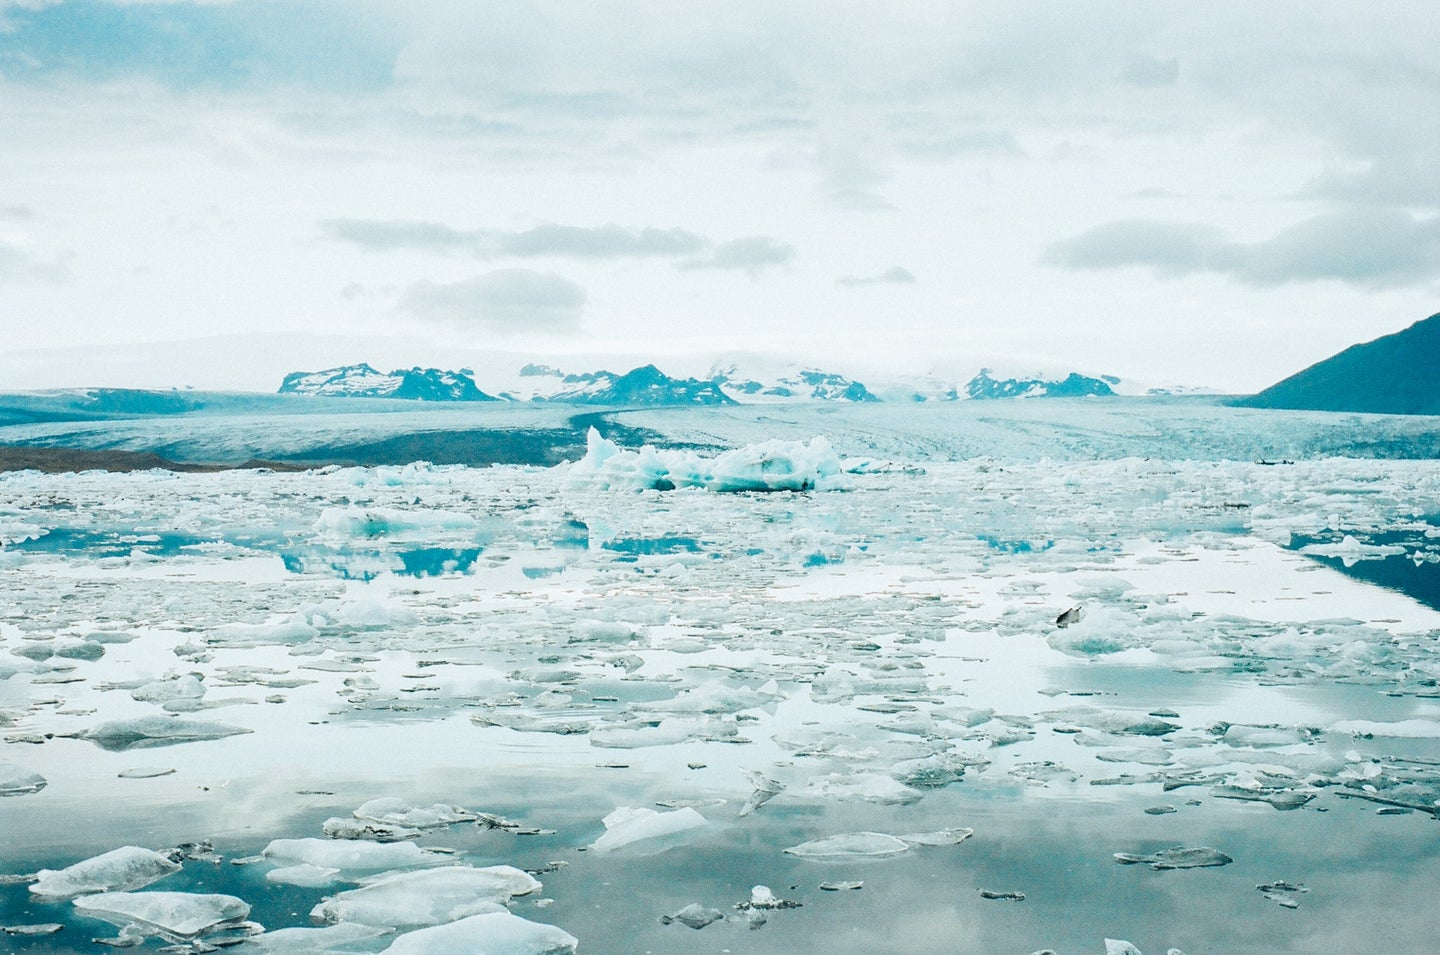 cold ocean waters with chunks of ice